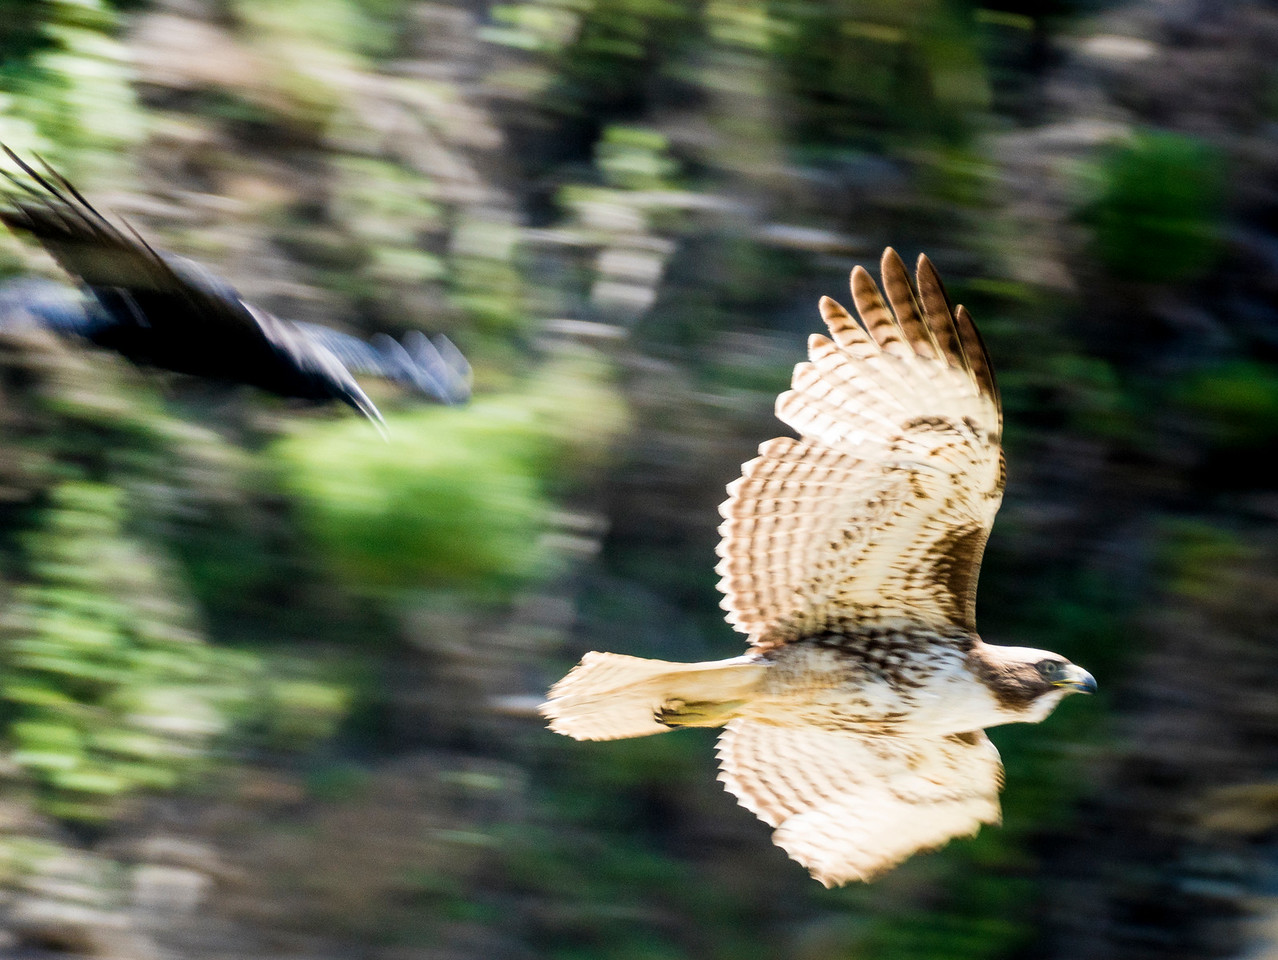 Crow chasing a Red-tailed hawk